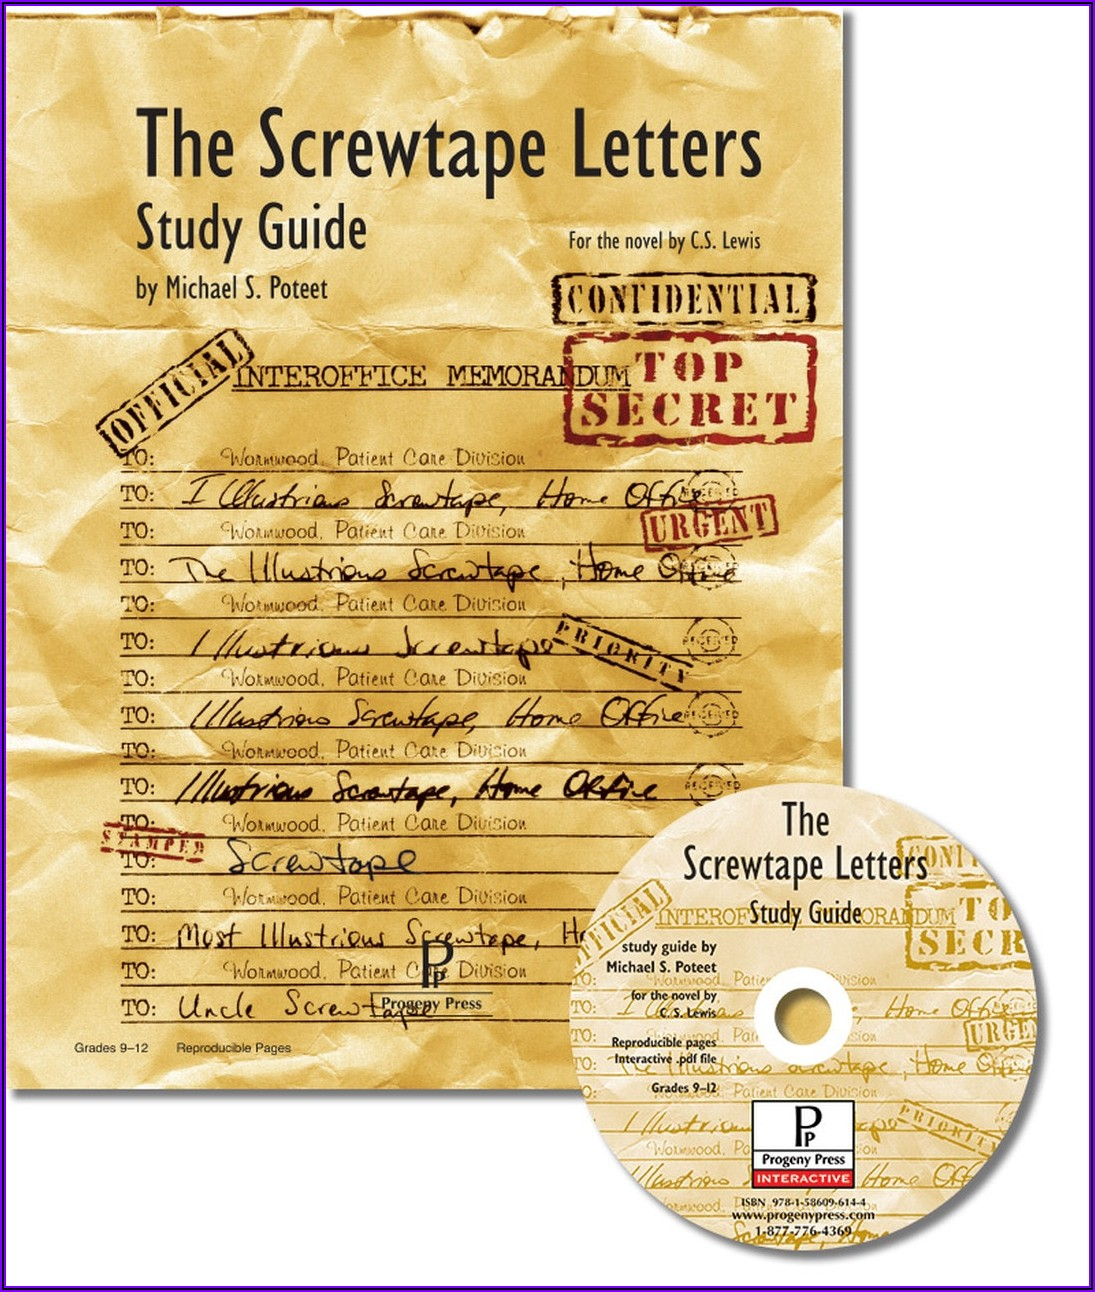 The Screwtape Letters Synopsis